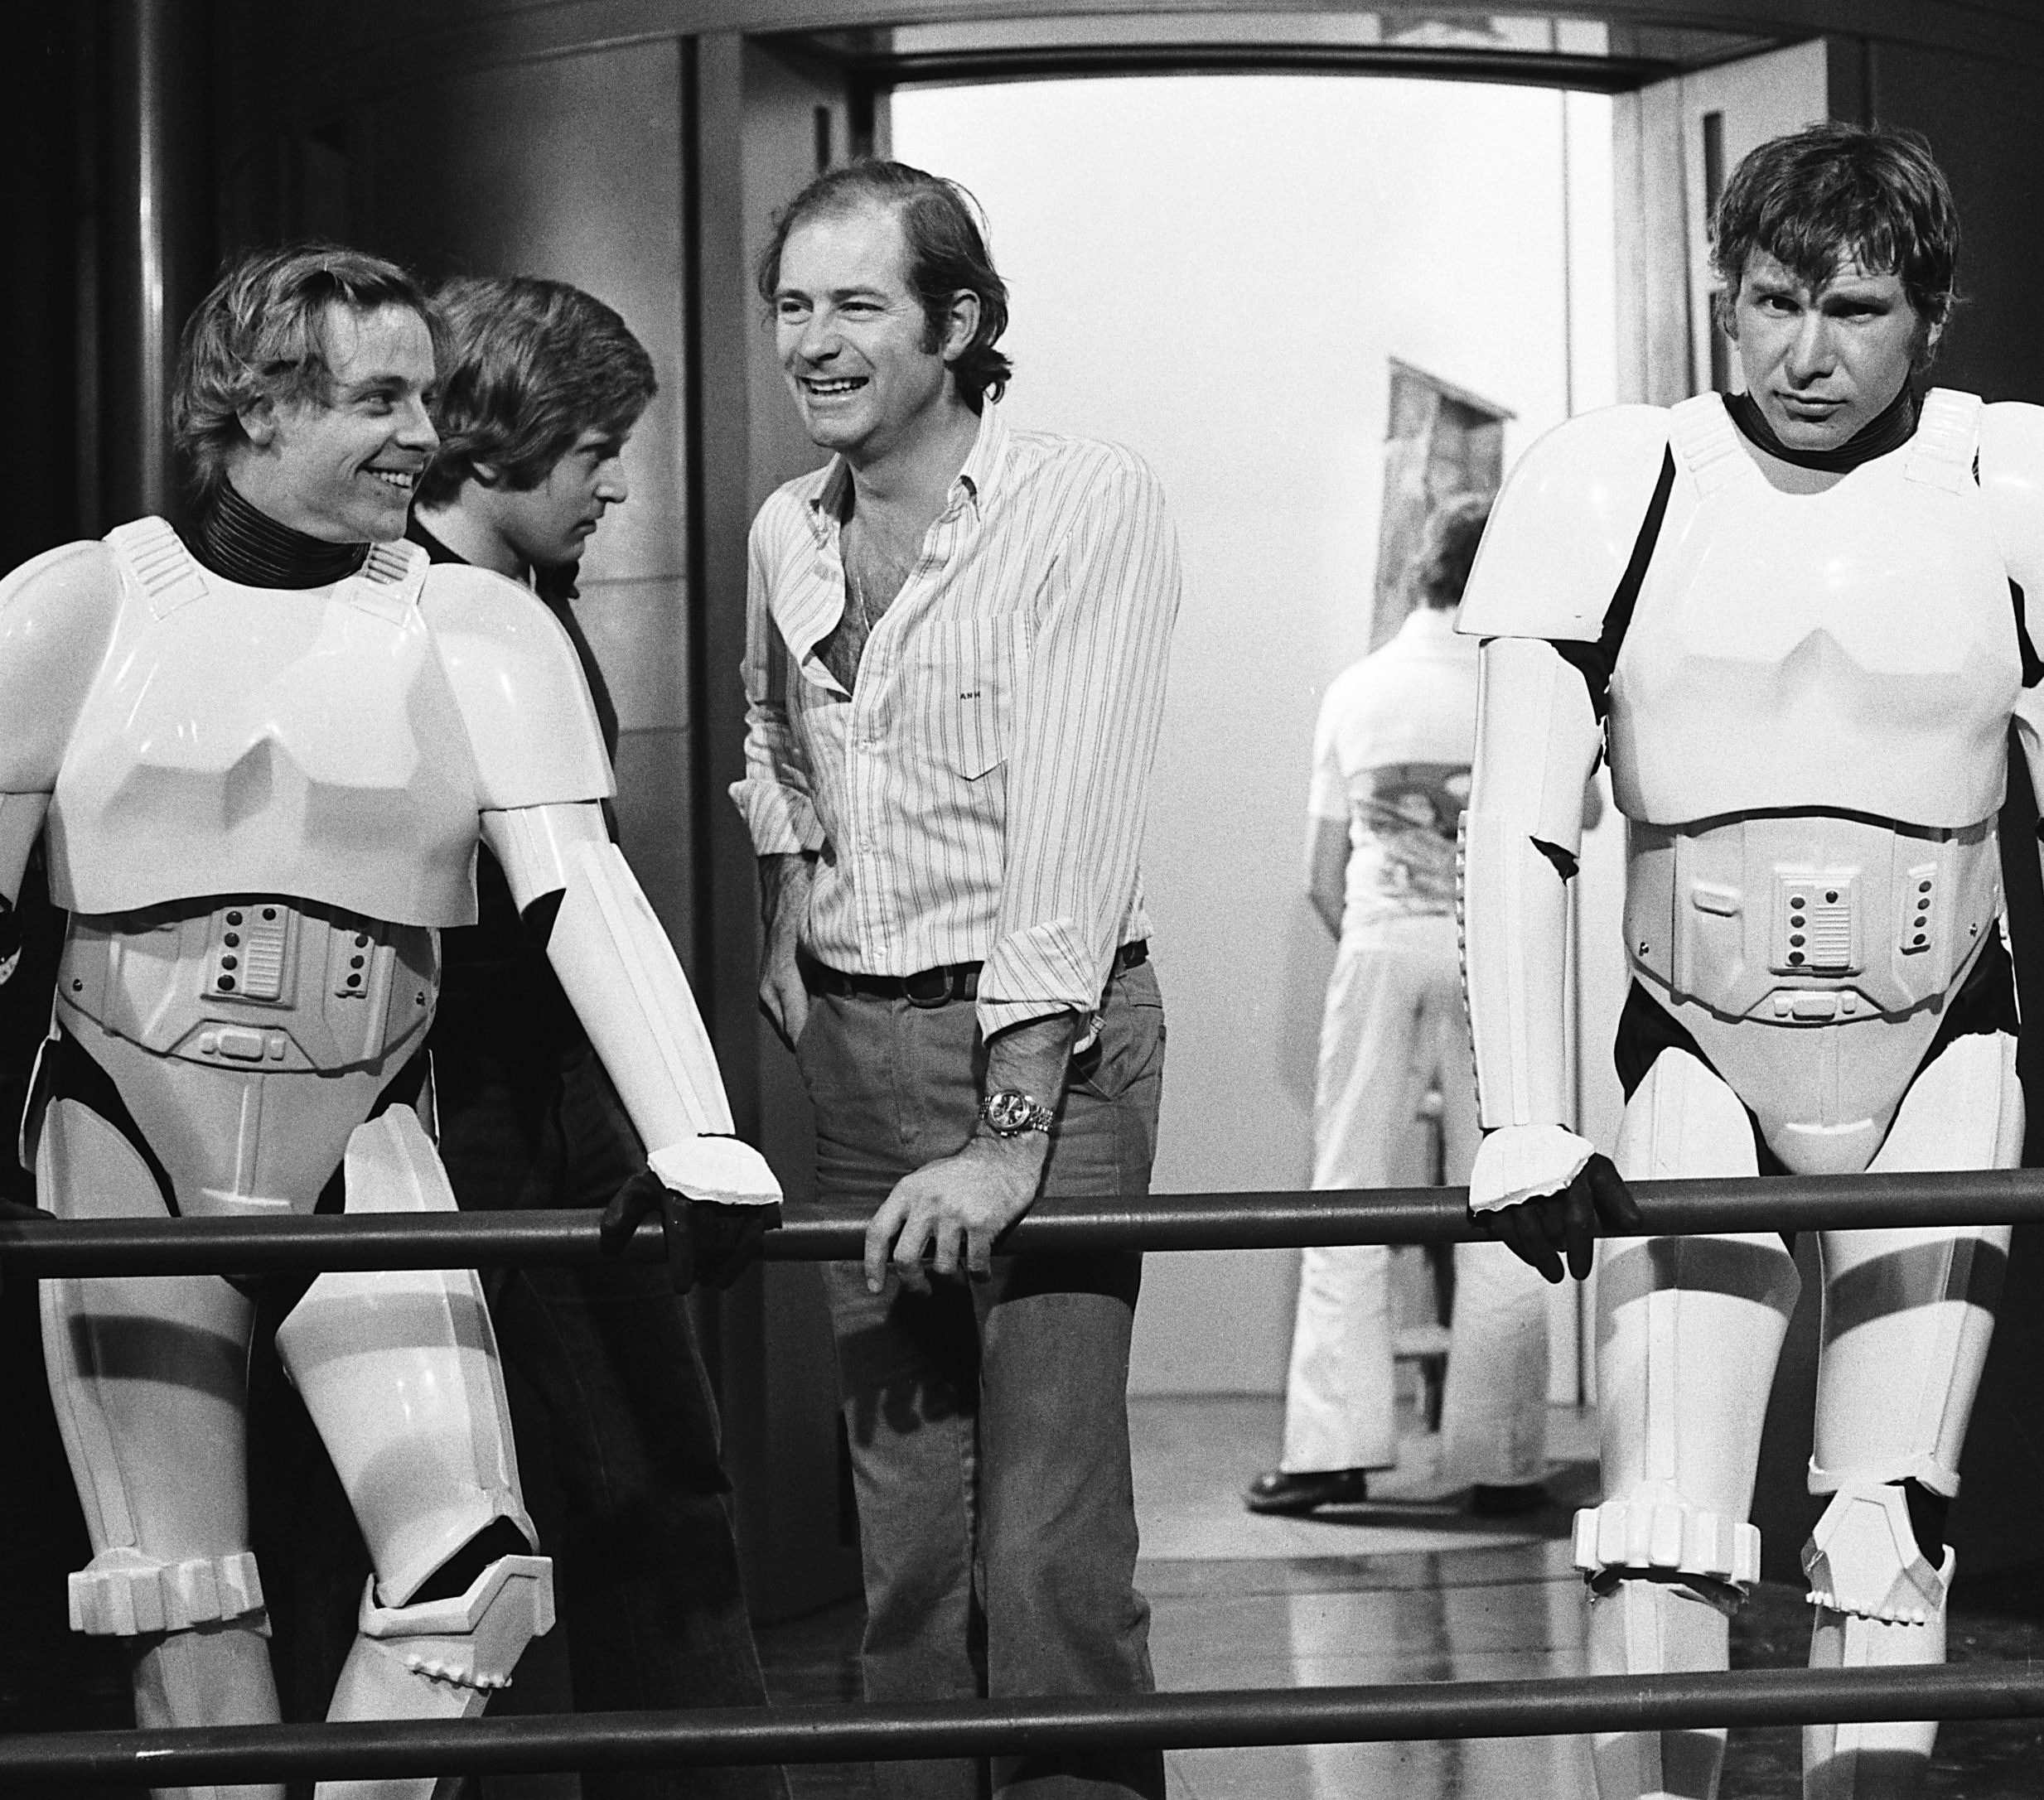 lmsg2w33bva31 scaled e1601460497847 20 Little-Known Facts About The Legendary Mark Hamill